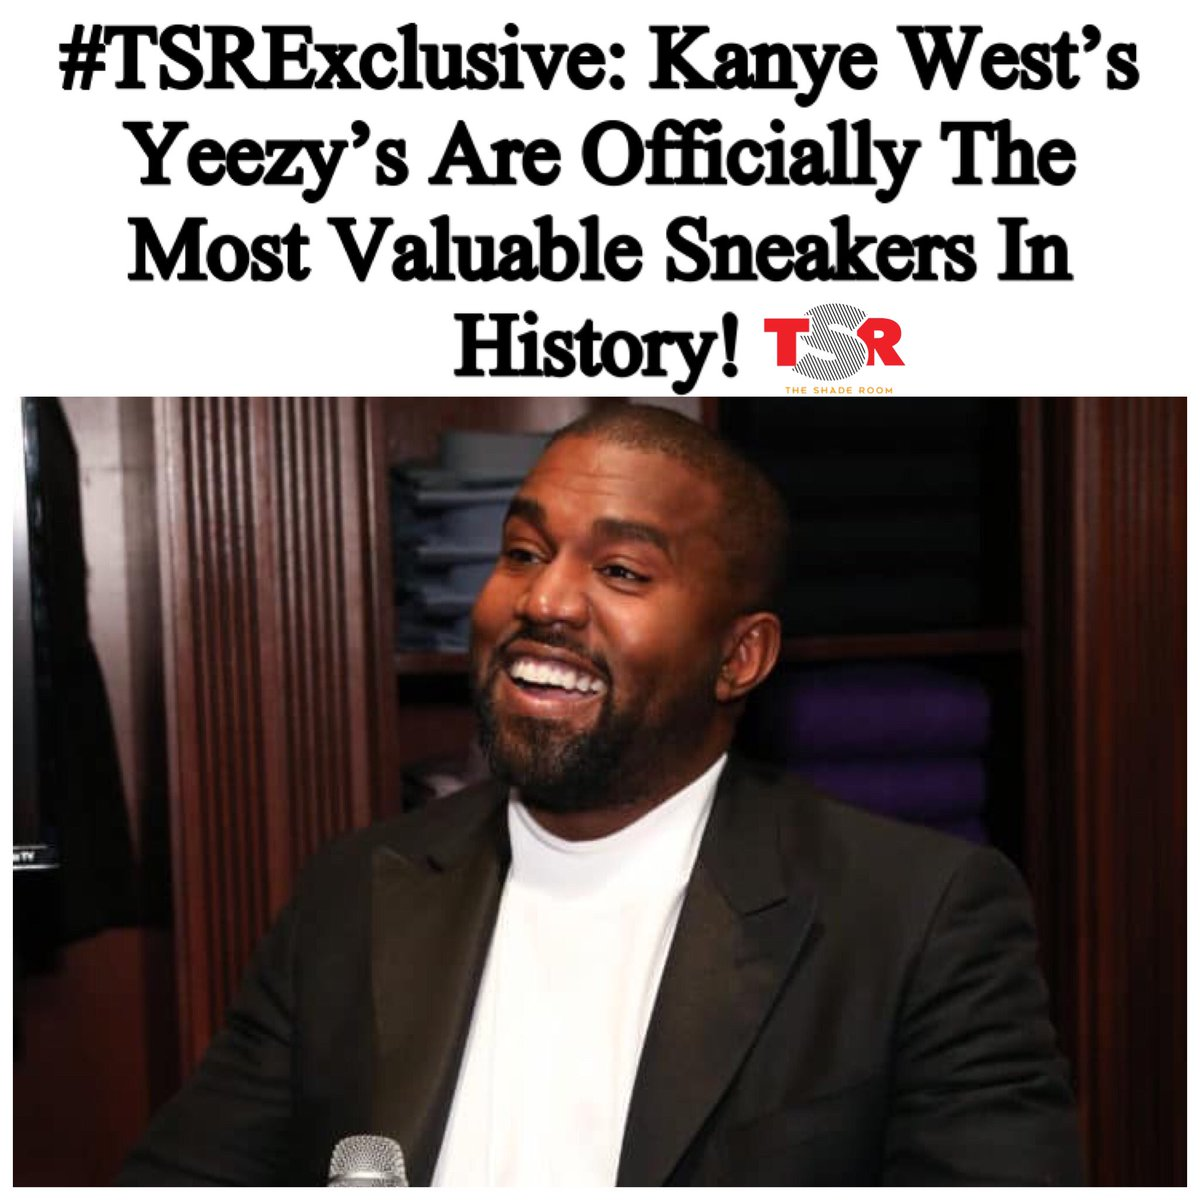 Kanye just keeps winning! 👏🏽 https://t.co/itgPEhYbRE https://t.co/wsxqFbCPXx